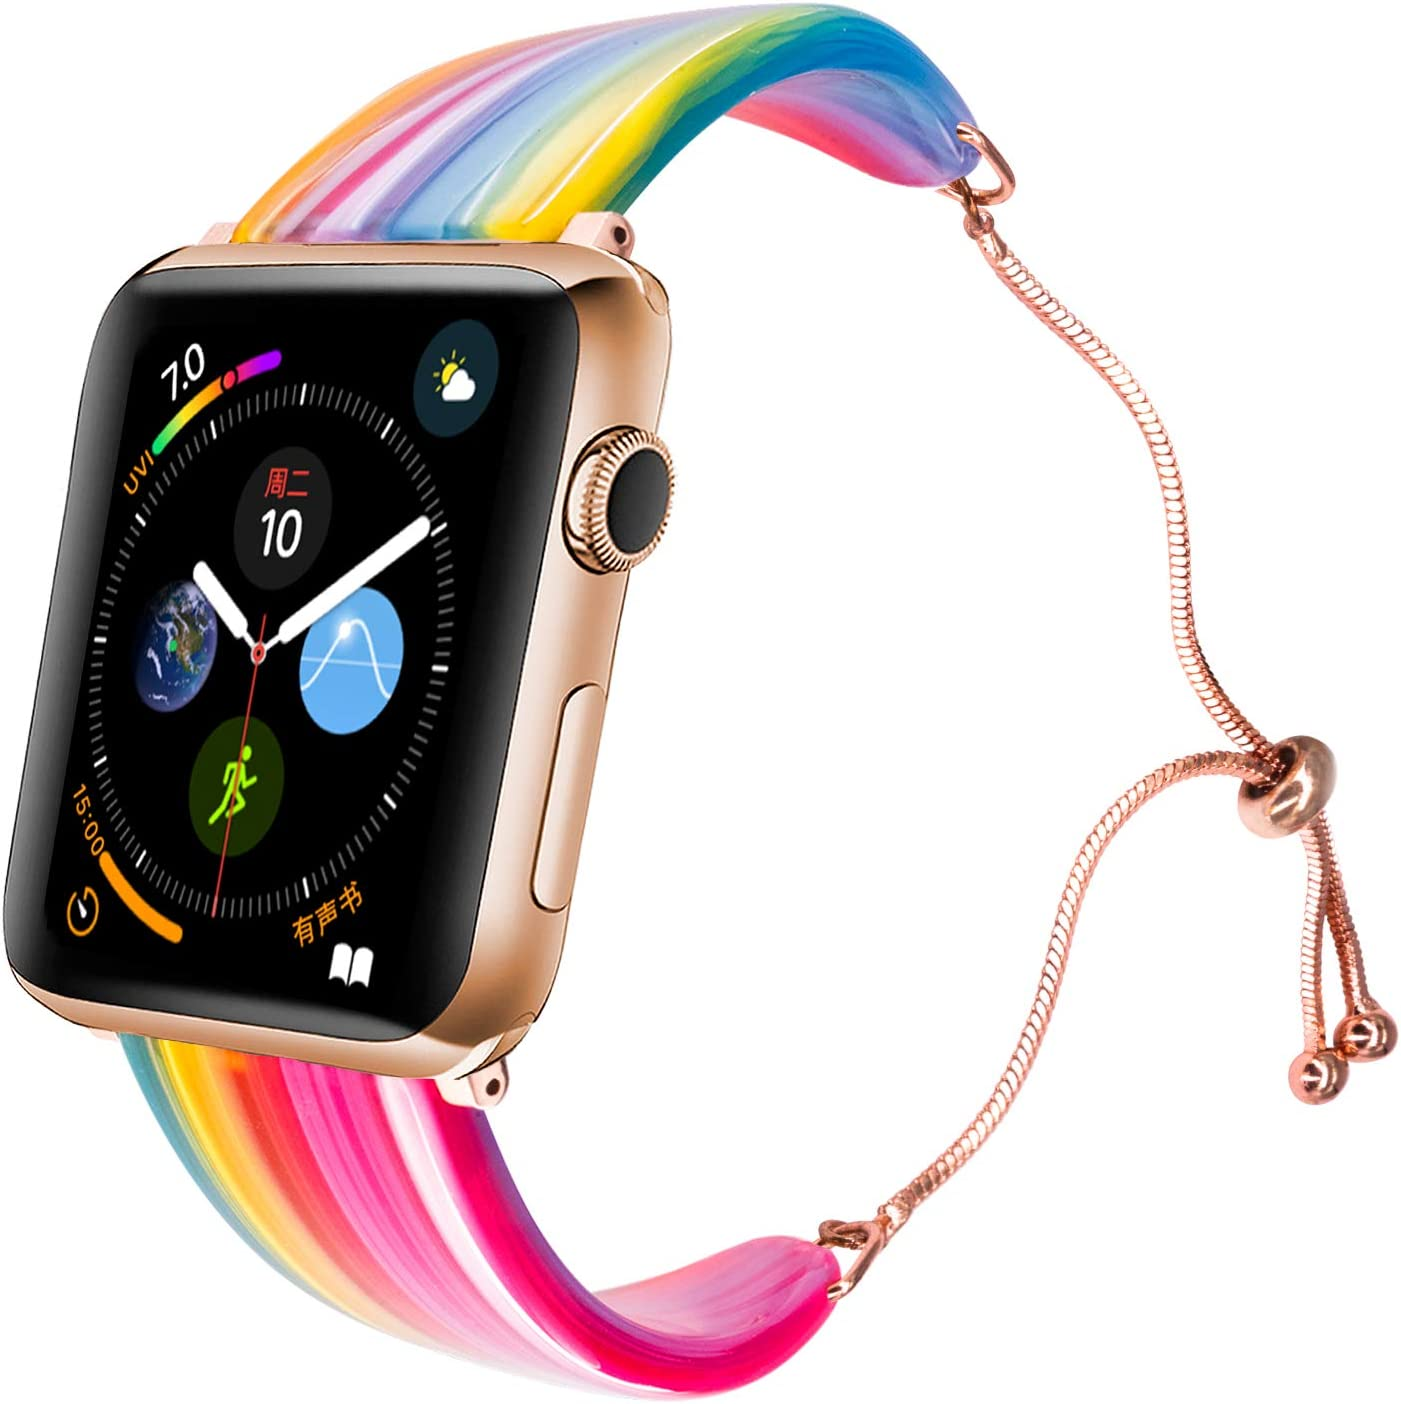 LINXUXIE Compatible with Apple Watch Bands 38mm 40mm,Women Dressy Resin Wristband Adjustable Bracelet Stylish Strap for iWatch Series SE/6/5/4/3/2/1 (Rainbow 1G, 38/40mm)